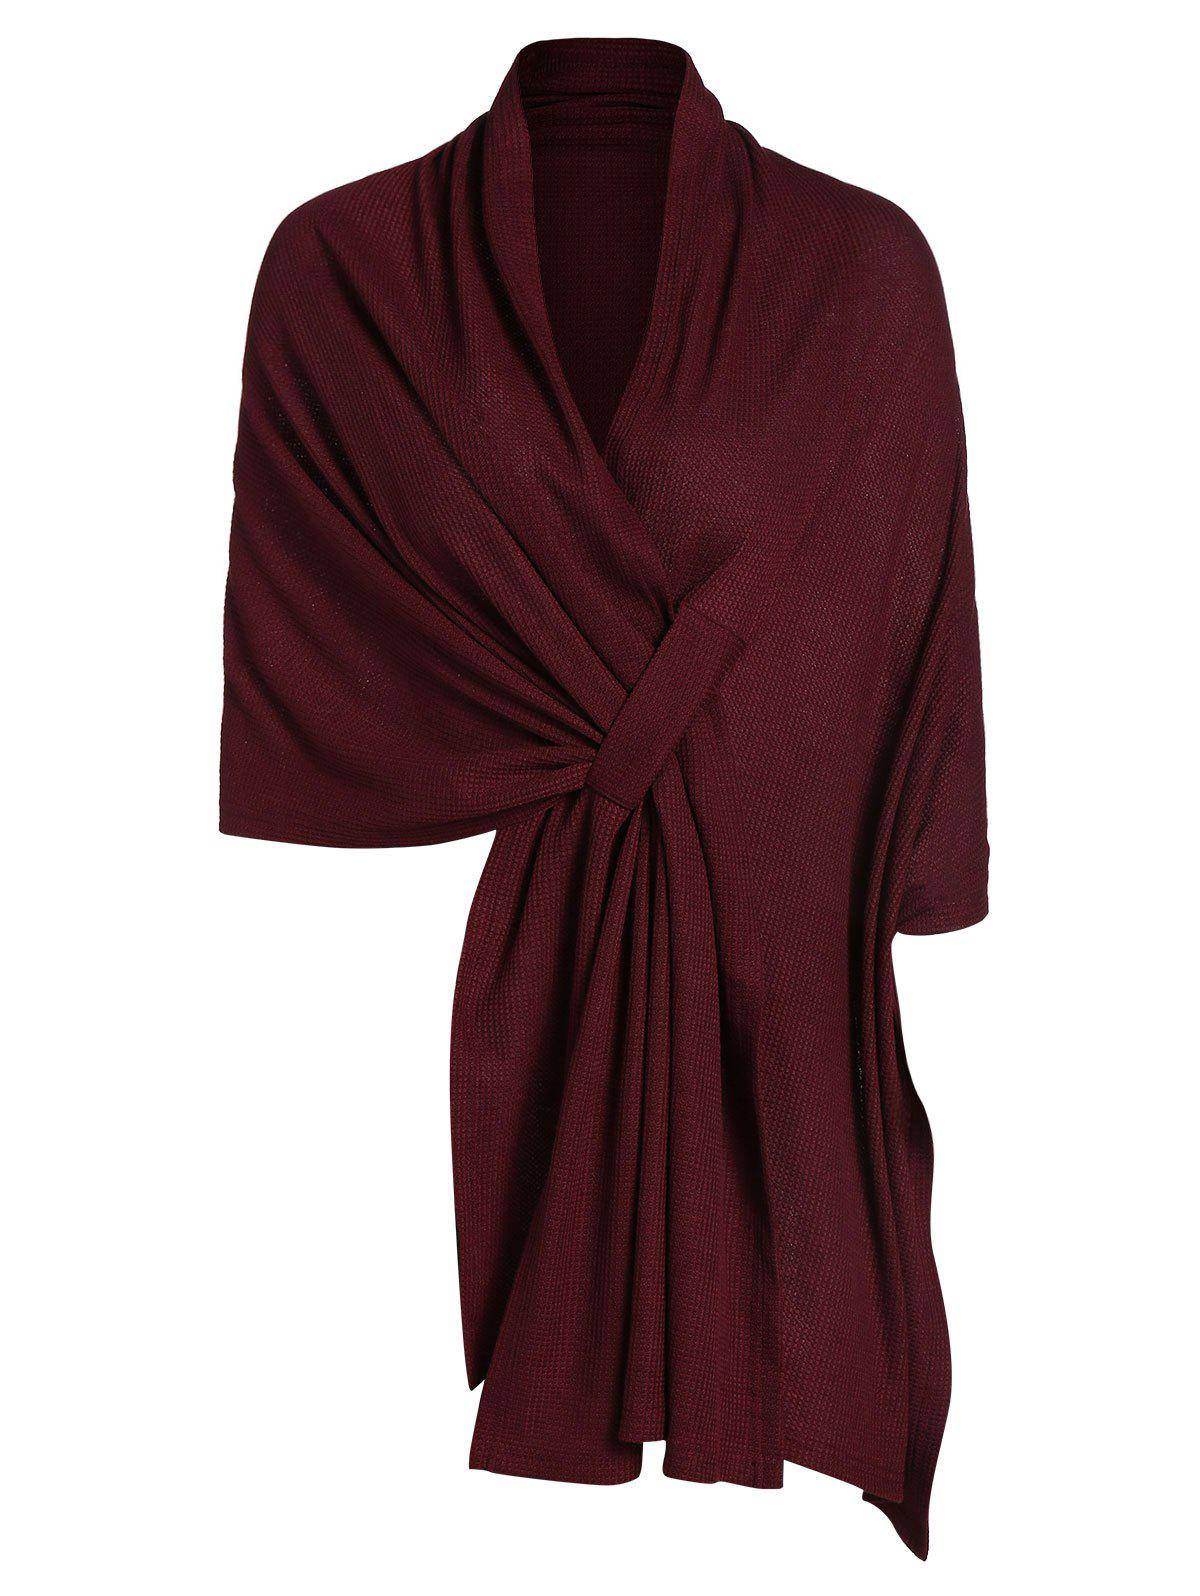 High Low Asymmetrical Knit Solid Cape - RED WINE XL